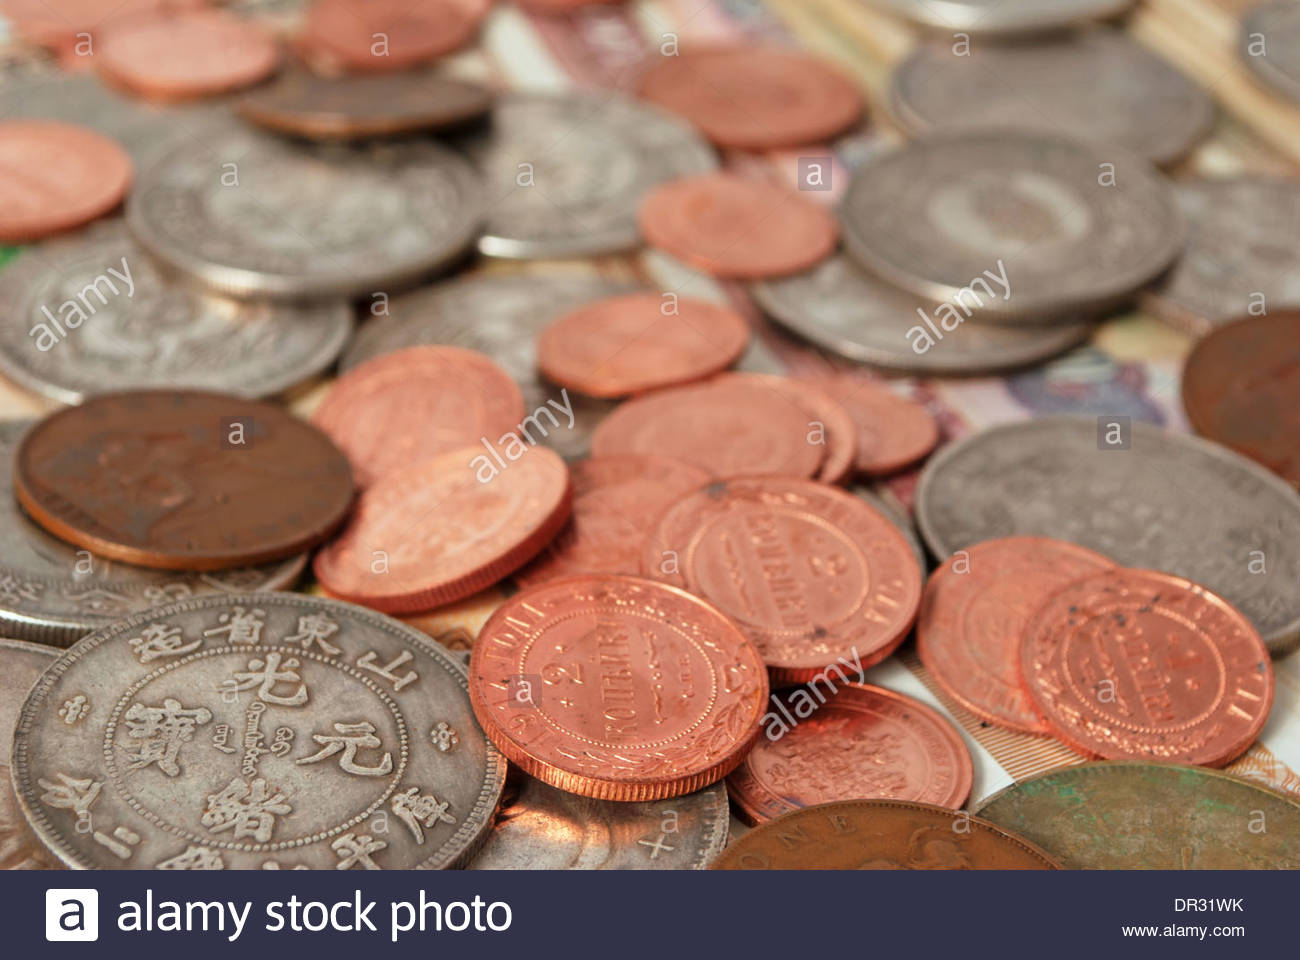 Coins and banknotes of different countries. - Stock Image